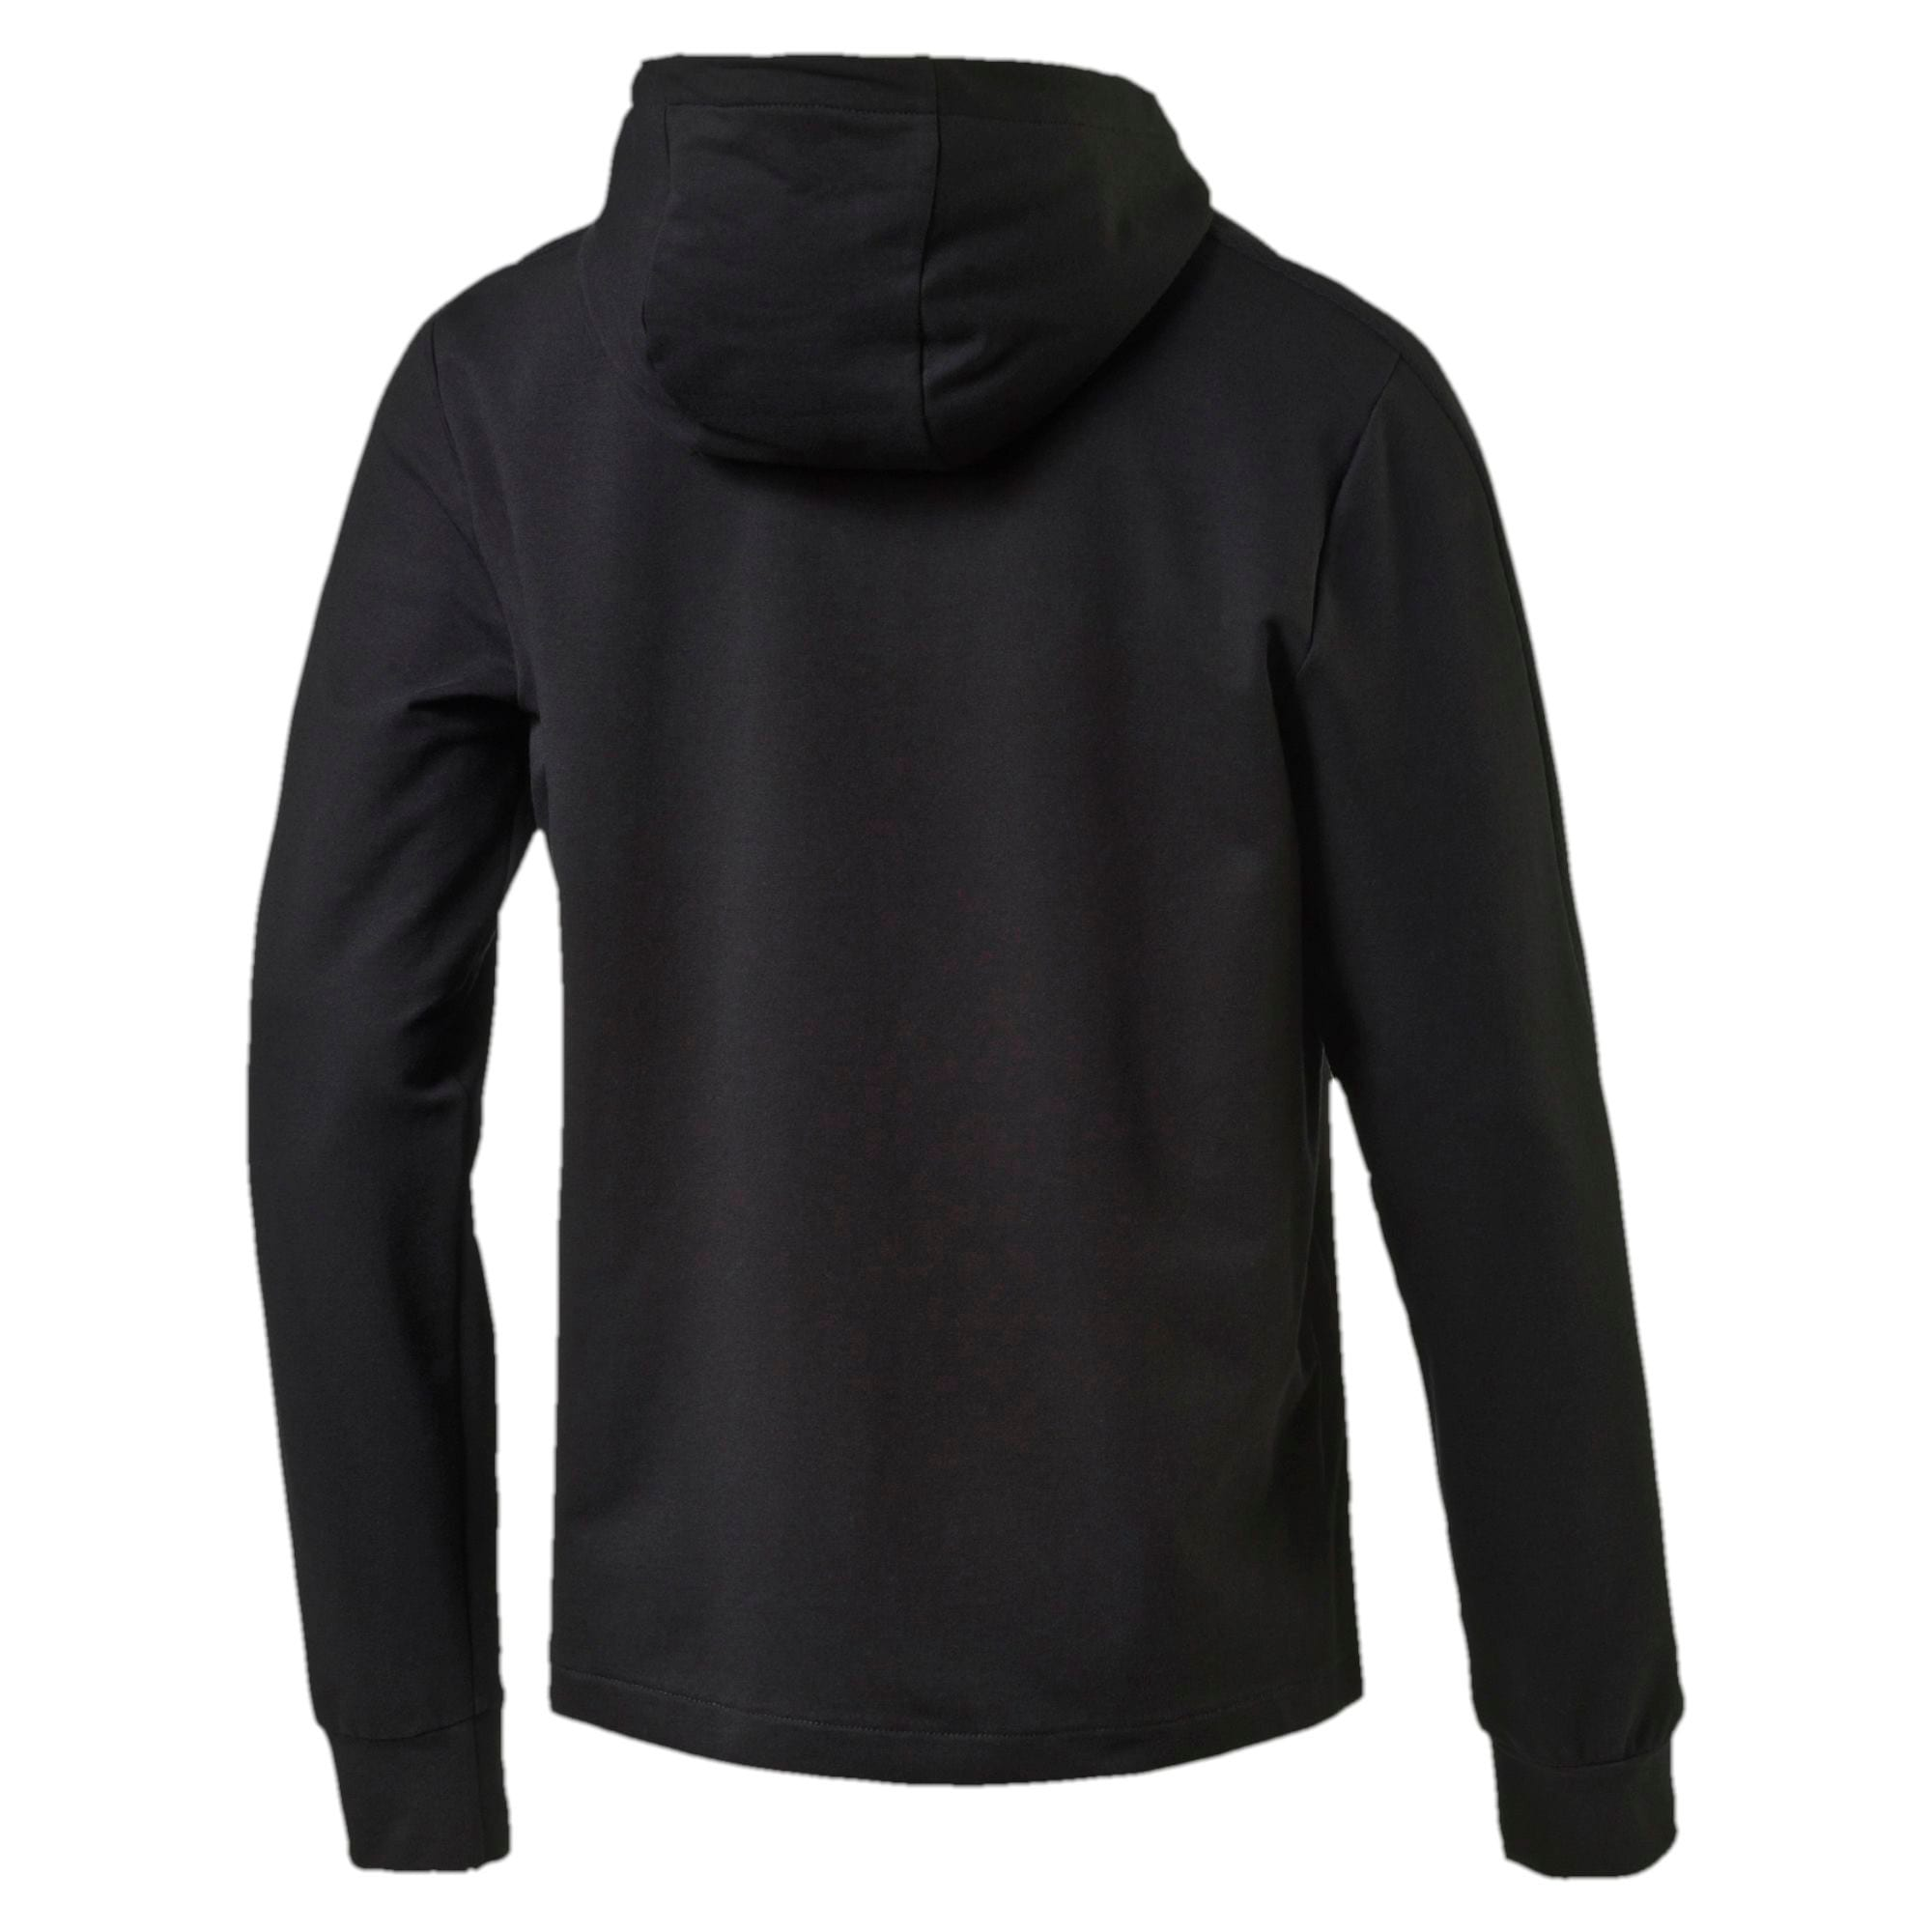 Thumbnail 4 of StretchLite Zip-Up Hoodie, Cotton Black, medium